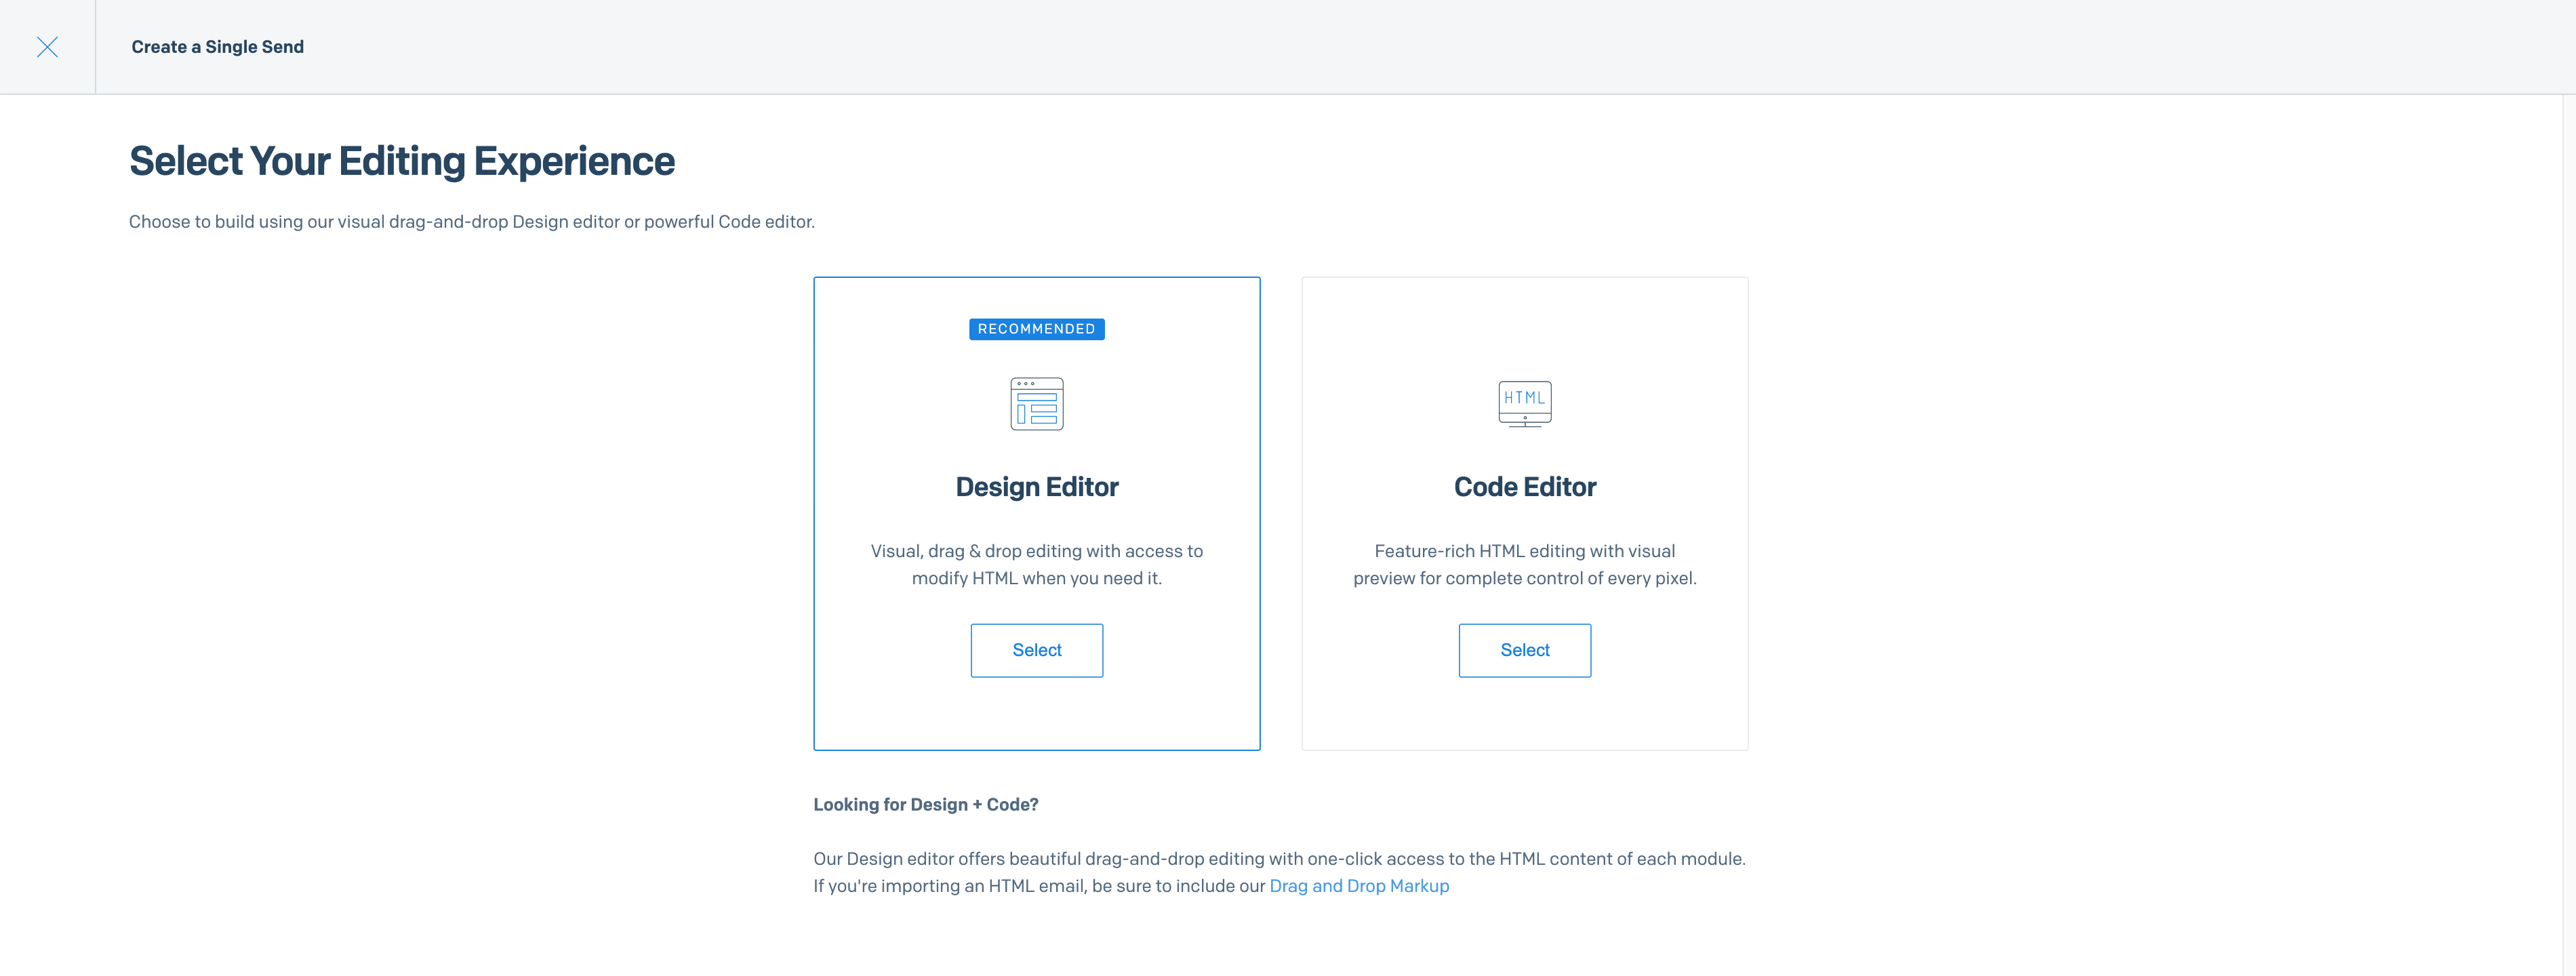 A window displaying two large boxes as editor options, the Design Editor or the Code Editor